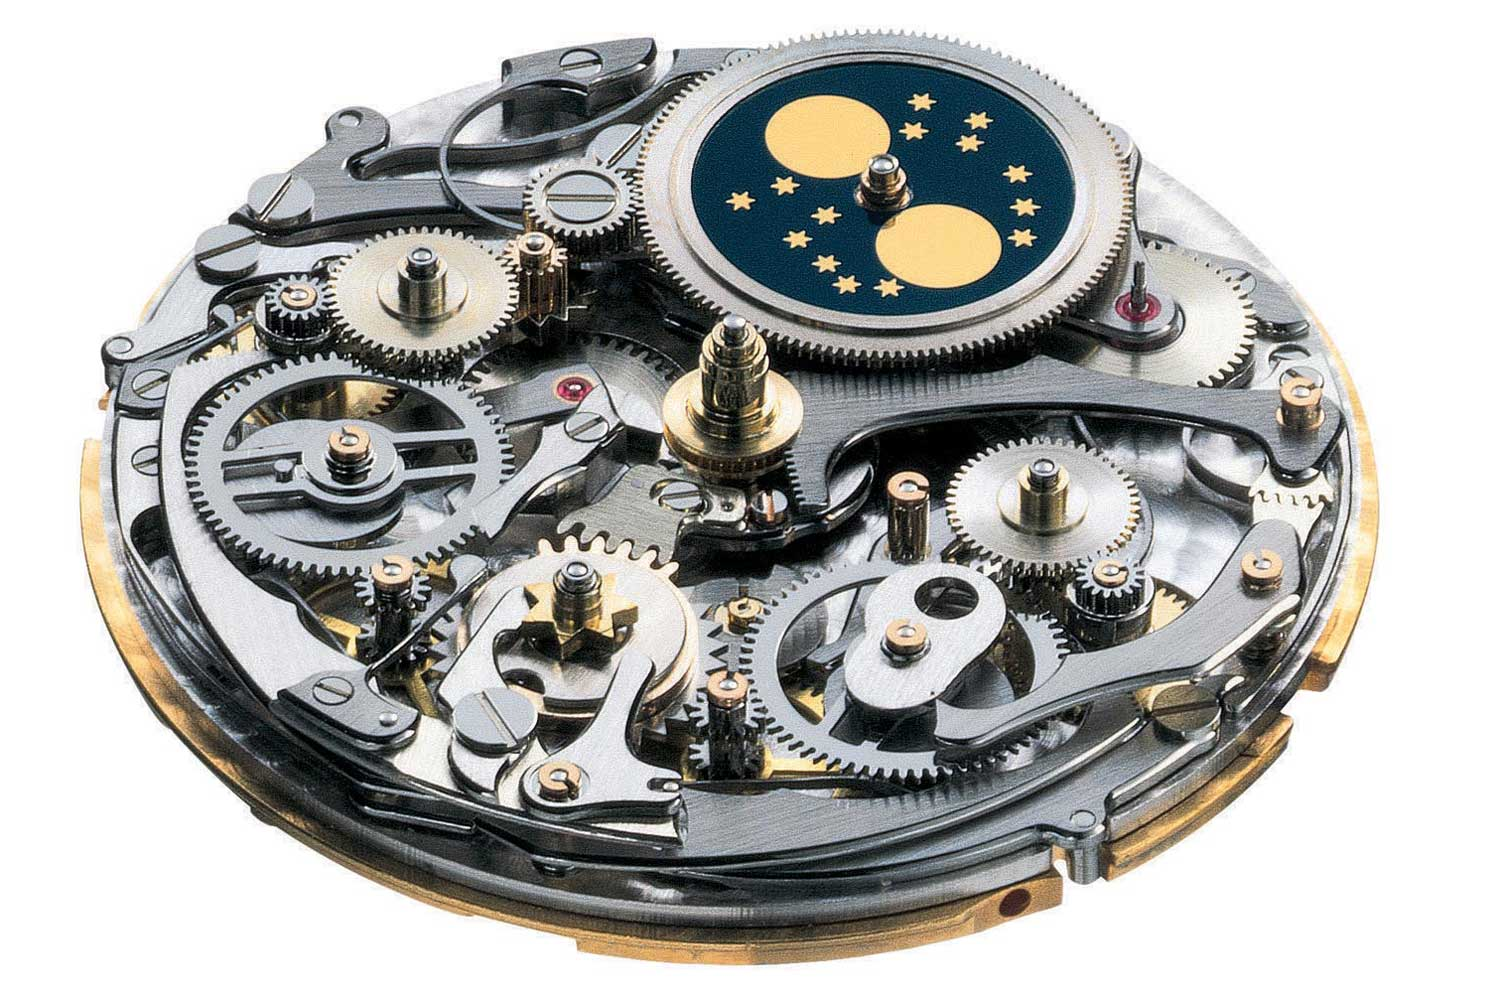 Caliber 2120/2808 used in the Audemars Piguet Jules Audemars Equation of Time